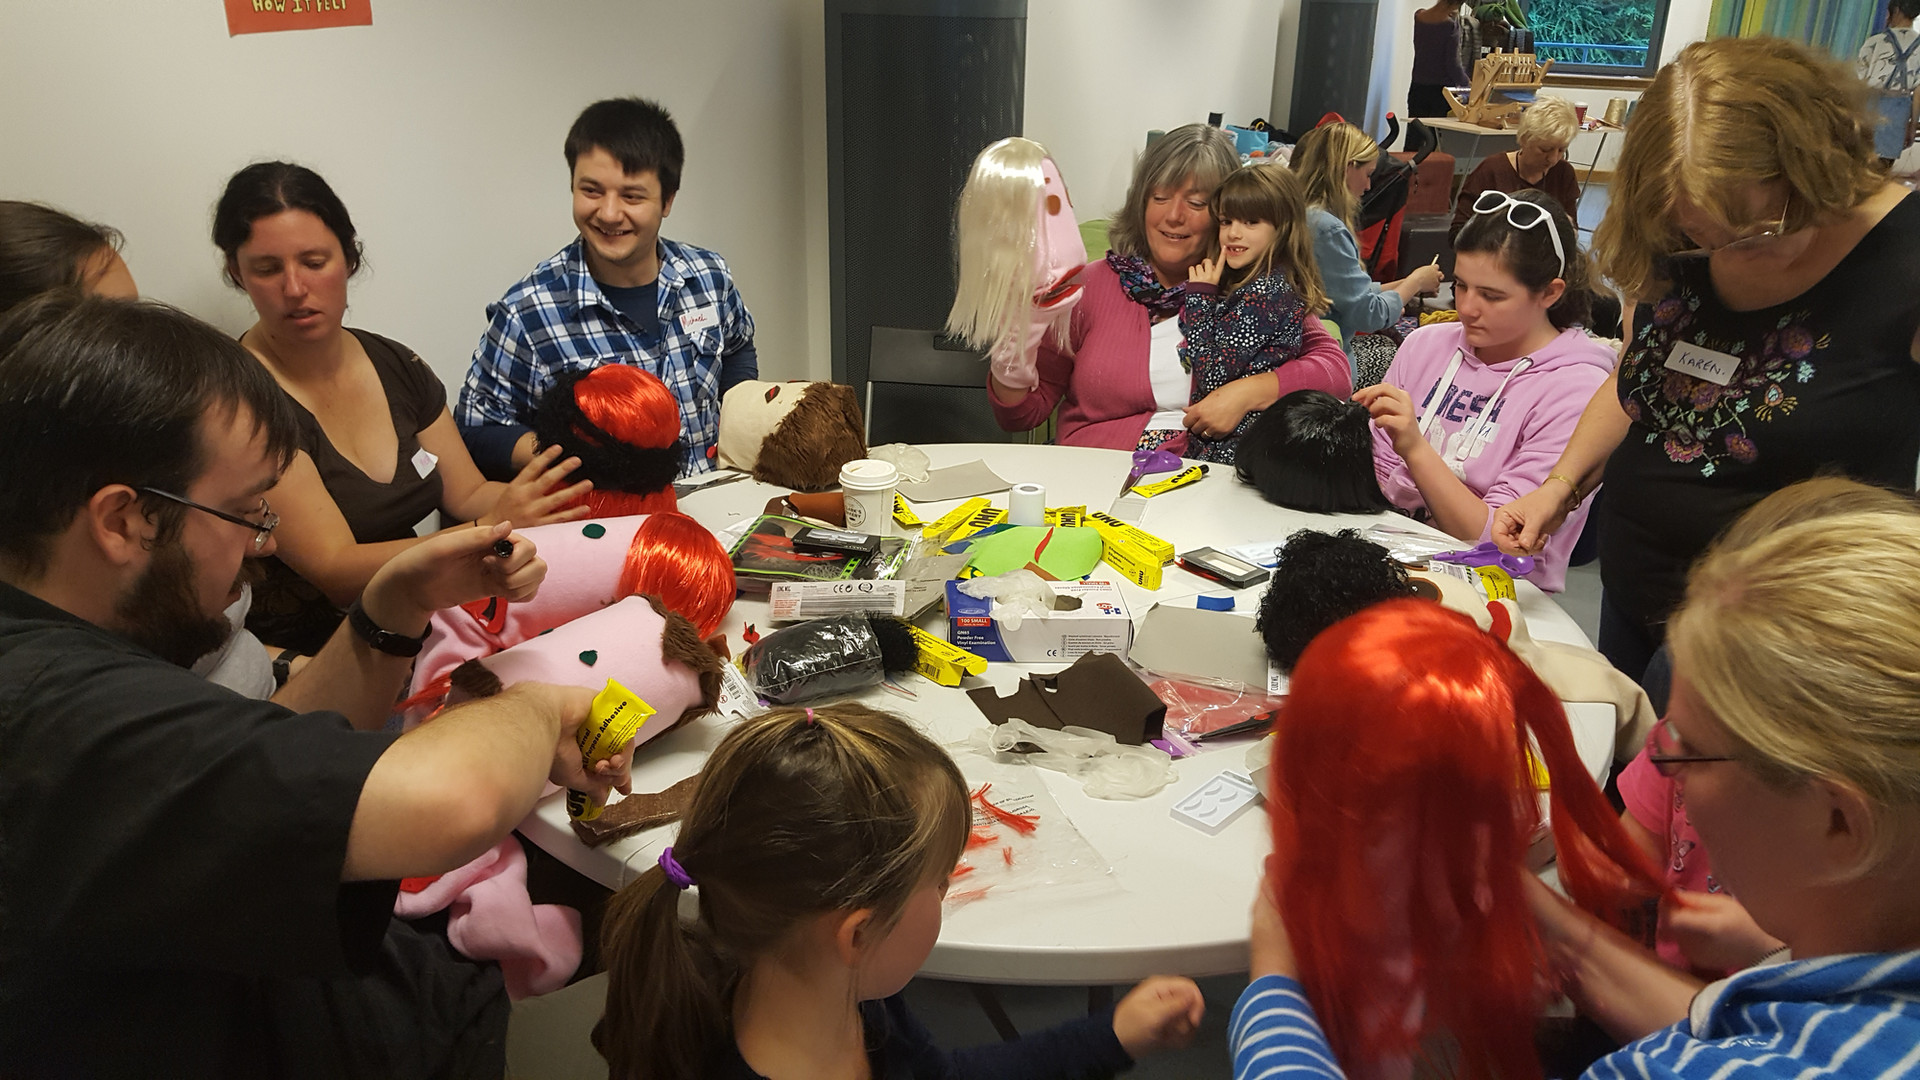 Puppet makers in action in a workshop hosted by Dundee Mini Make off